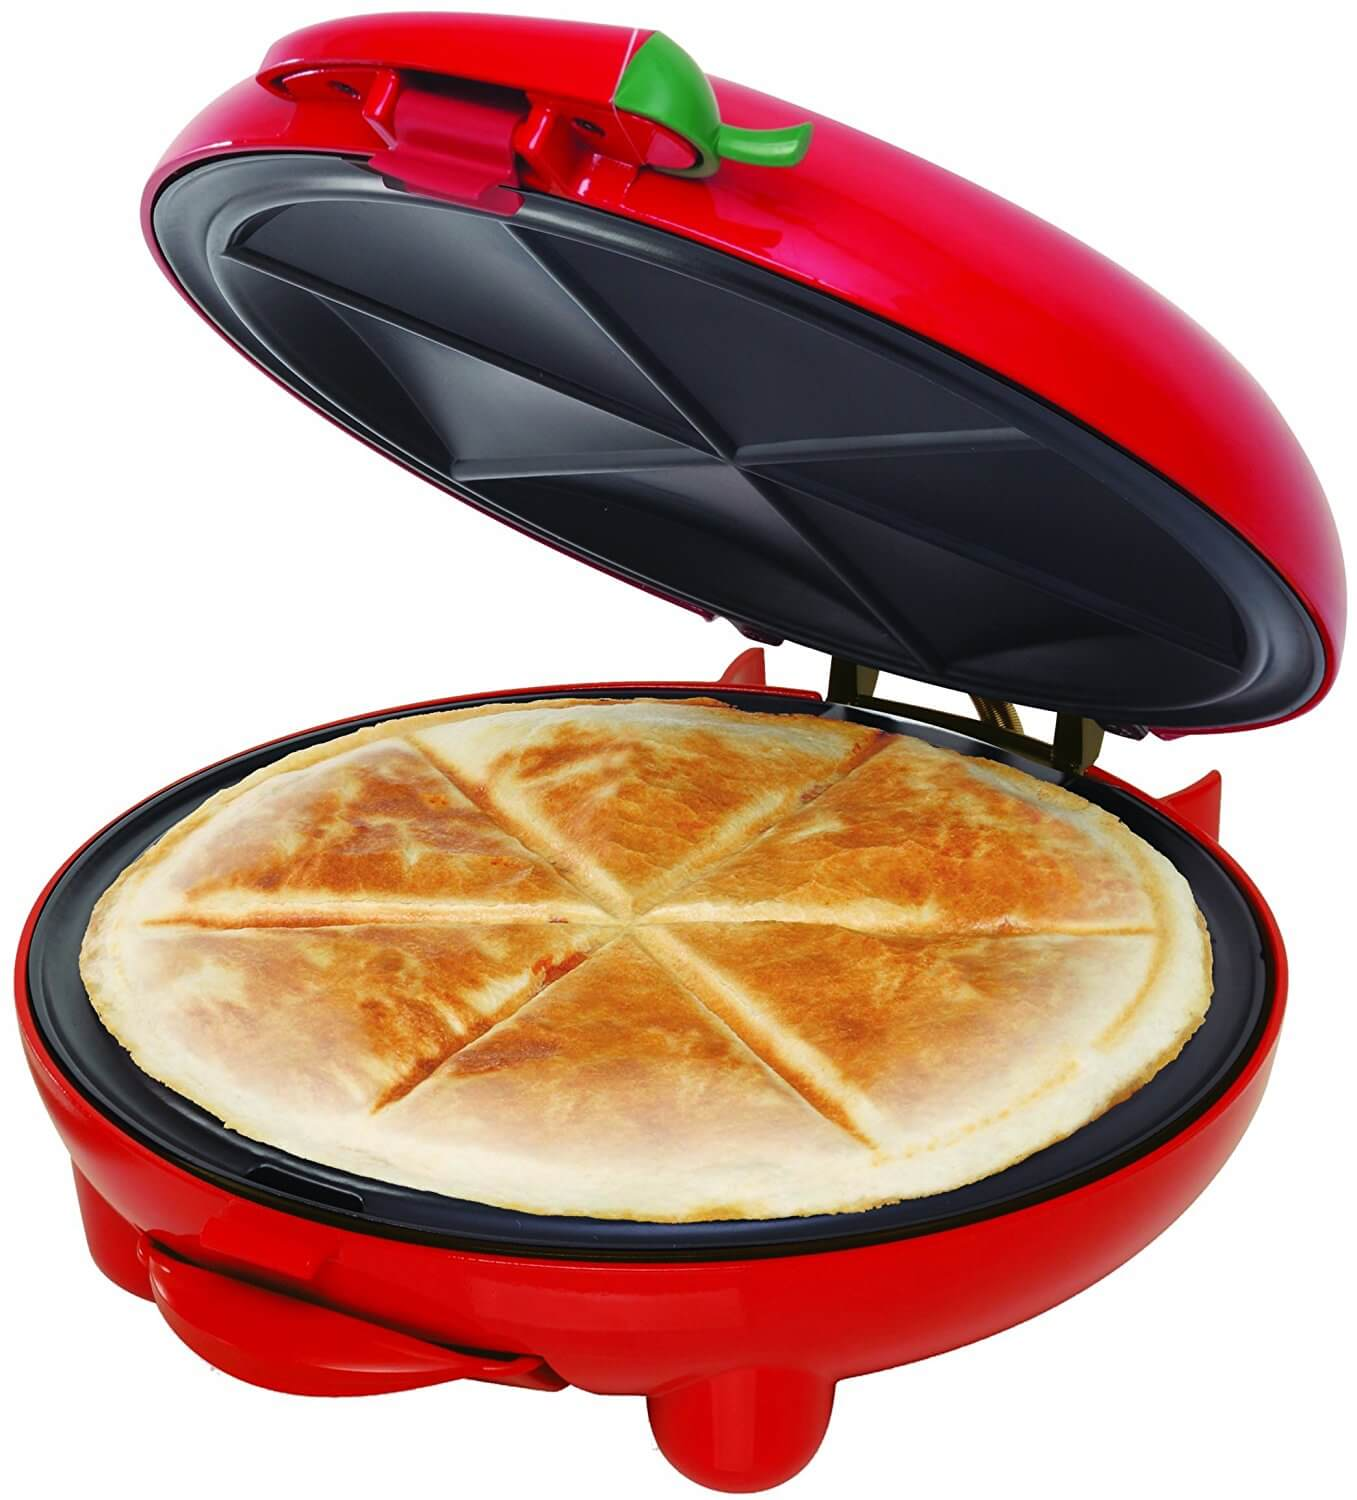 BELLA 13506 8-inch Quesadilla Maker